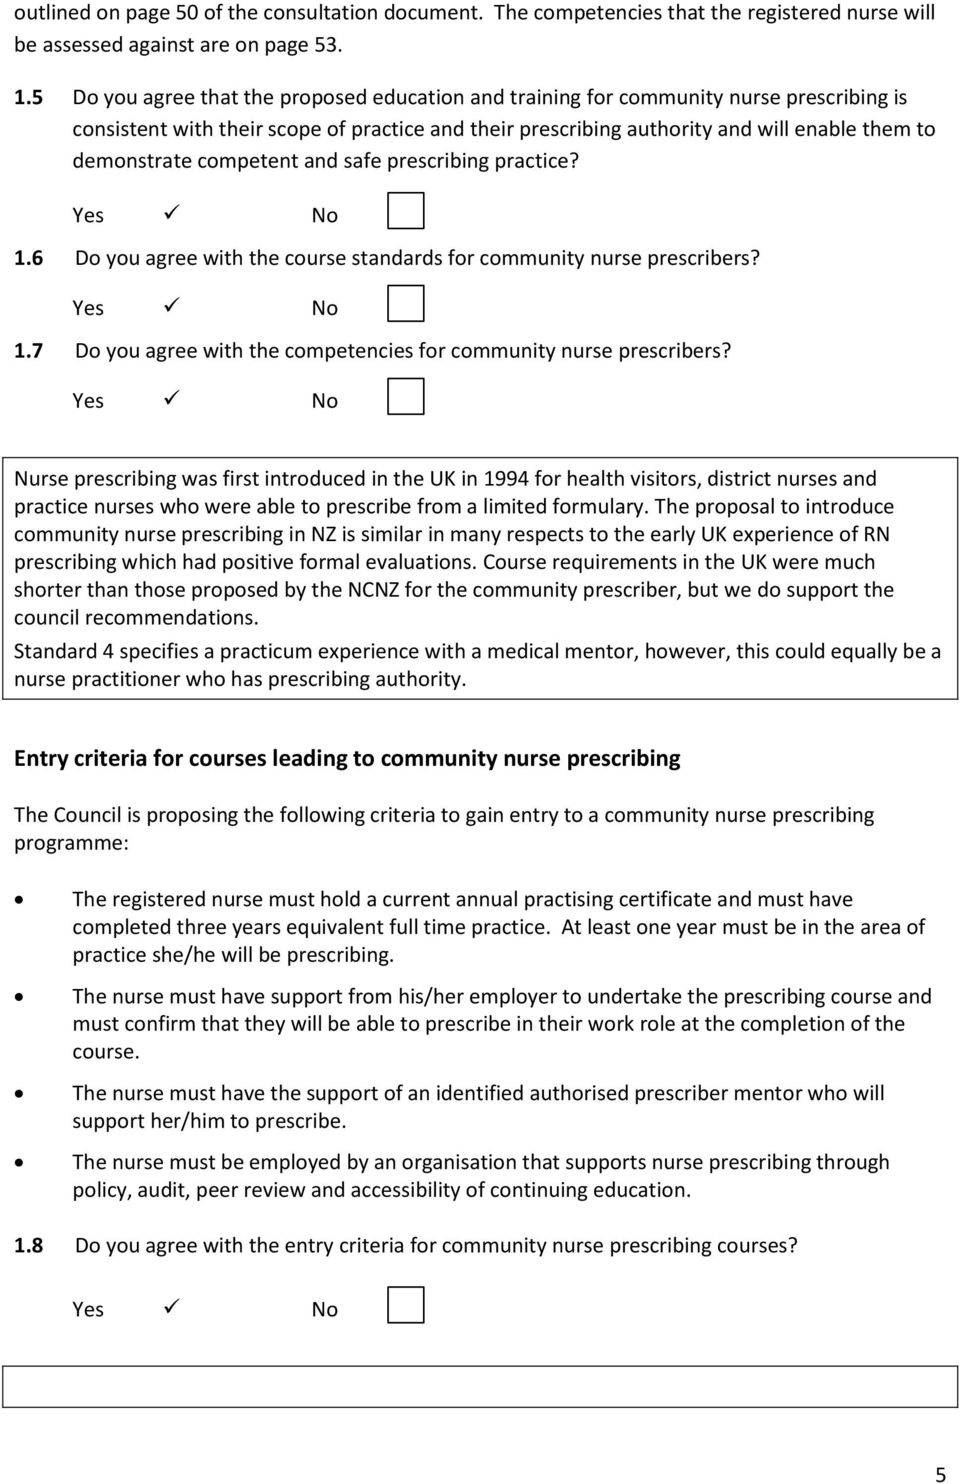 competent and safe prescribing practice? 1.6 Do you agree with the course standards for community nurse prescribers? 1.7 Do you agree with the competencies for community nurse prescribers?